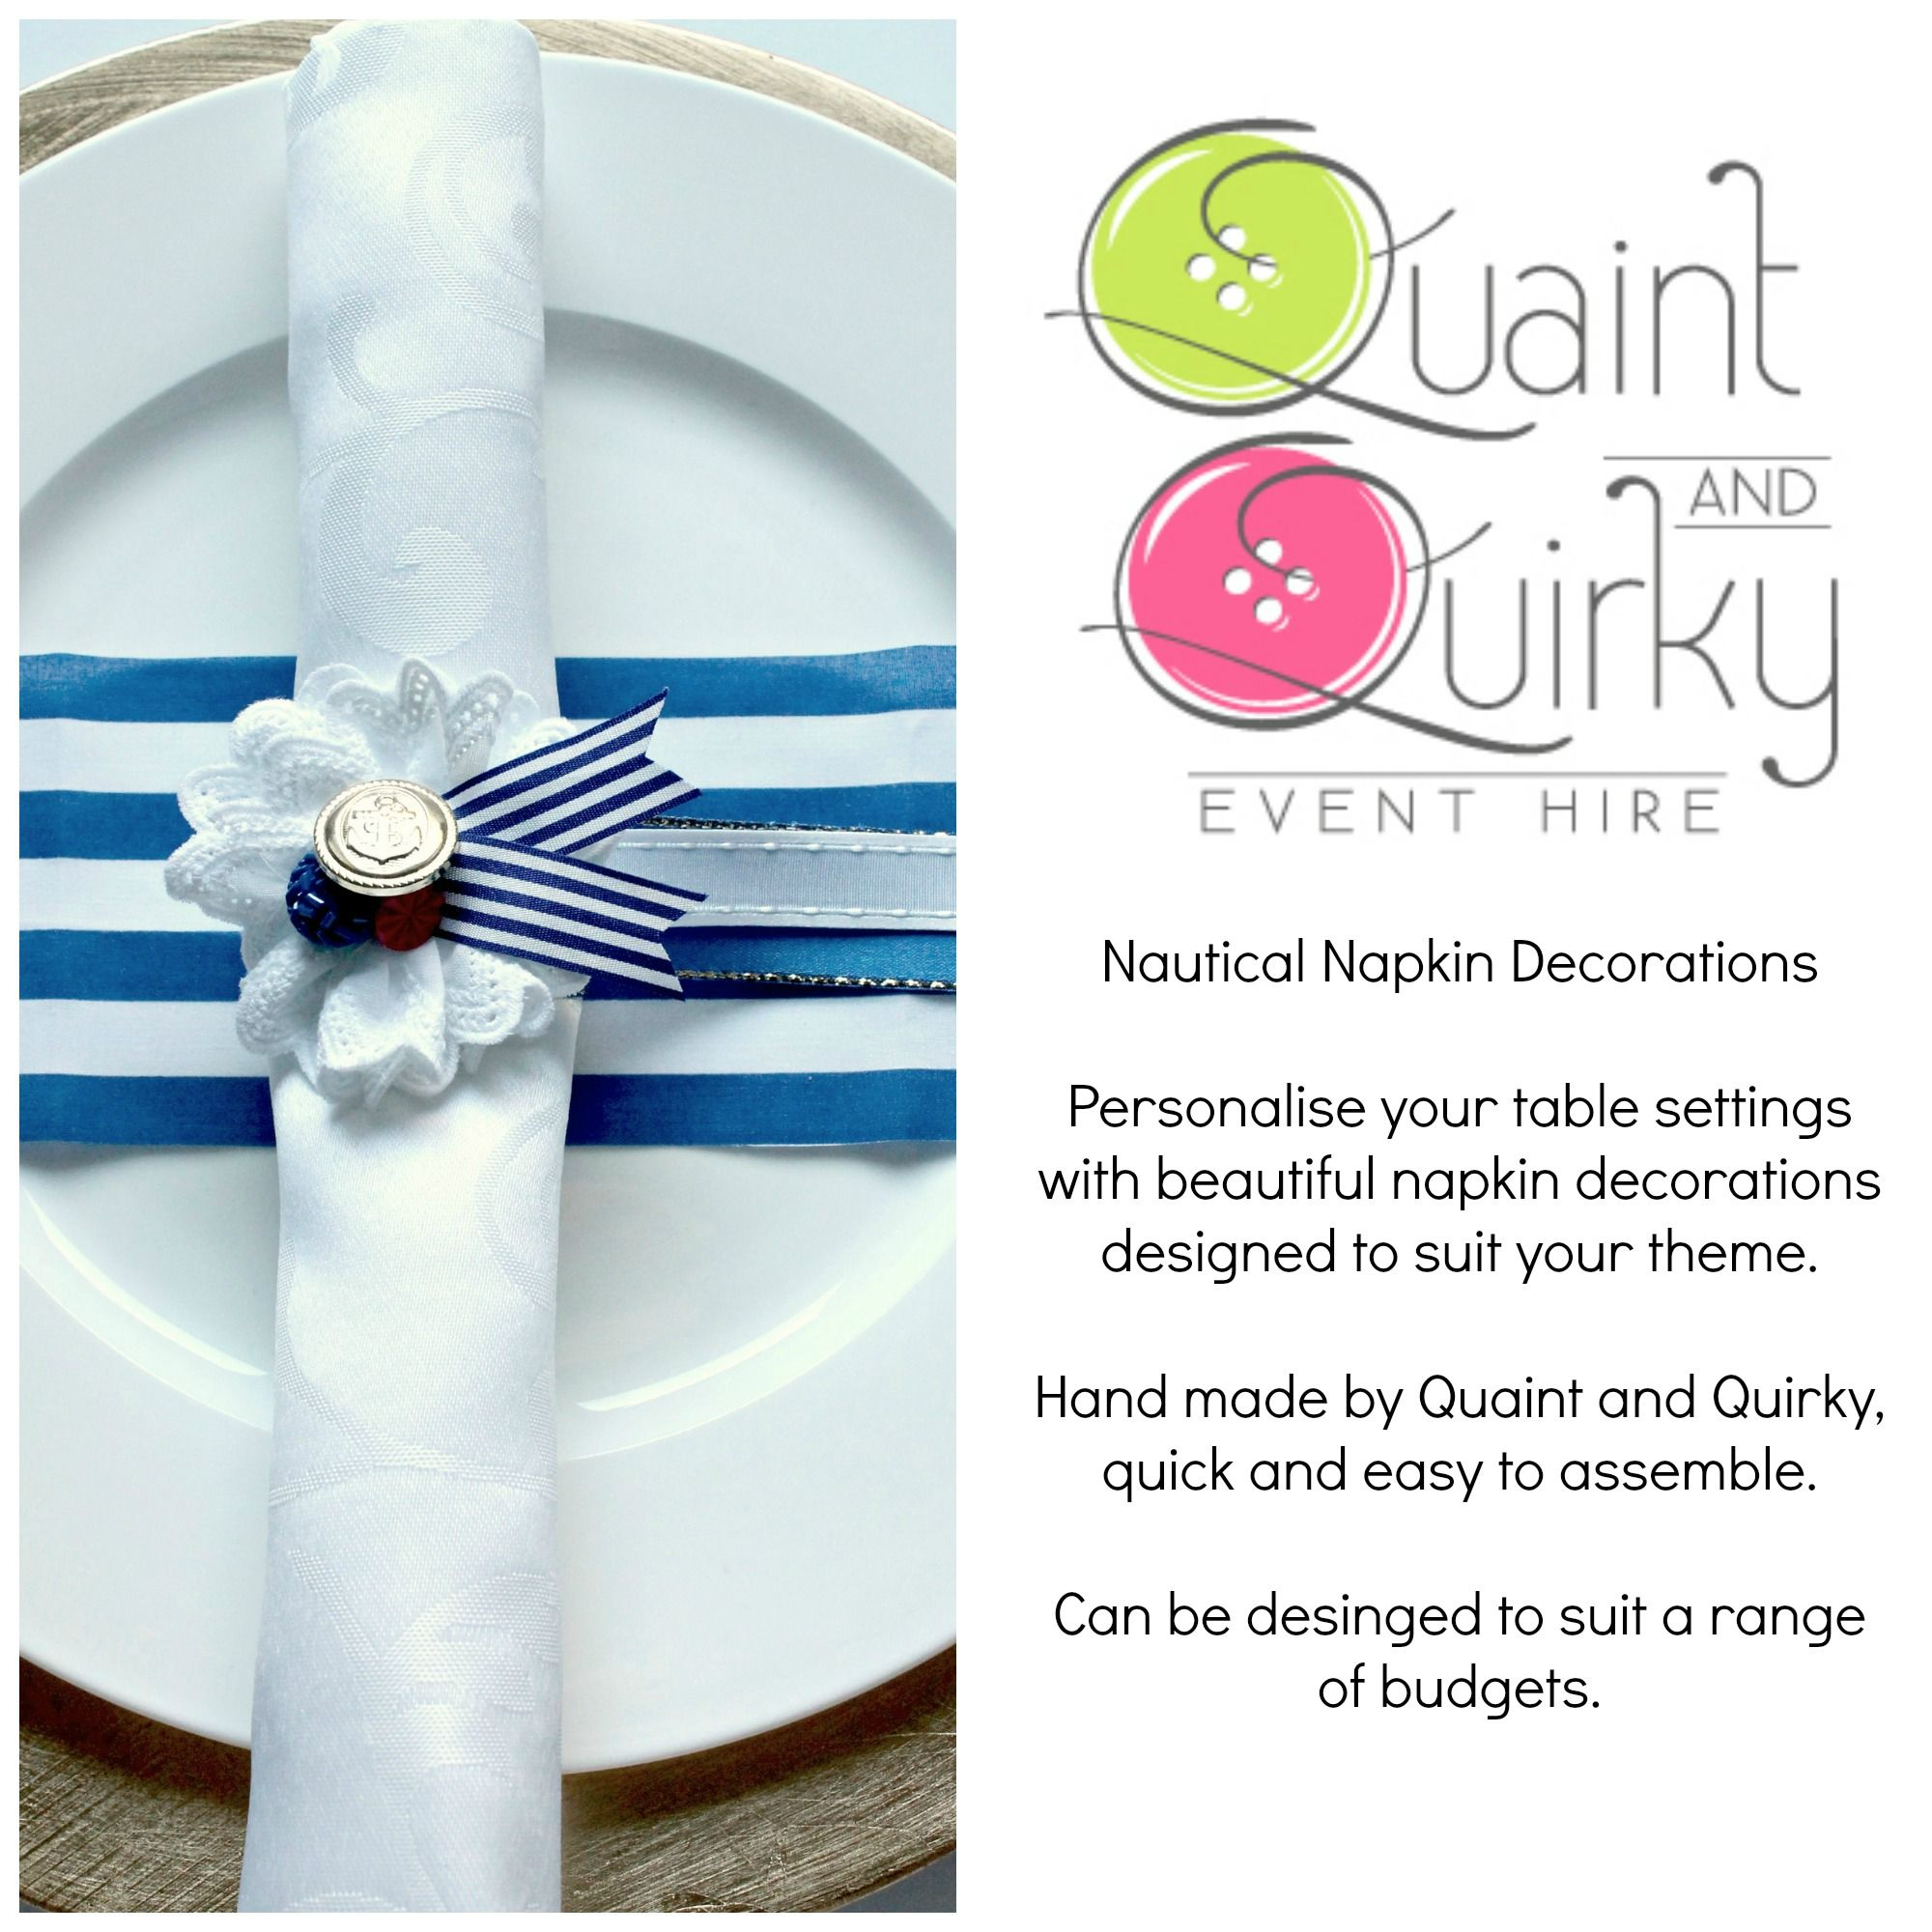 Part of the nautical range, this napkin decoration can be made in a range of colours to suit your theme. Email quaintandquirkyevents@yahoo.com or visit our website for more information www.quaintandquirkyeventhire.co.uk